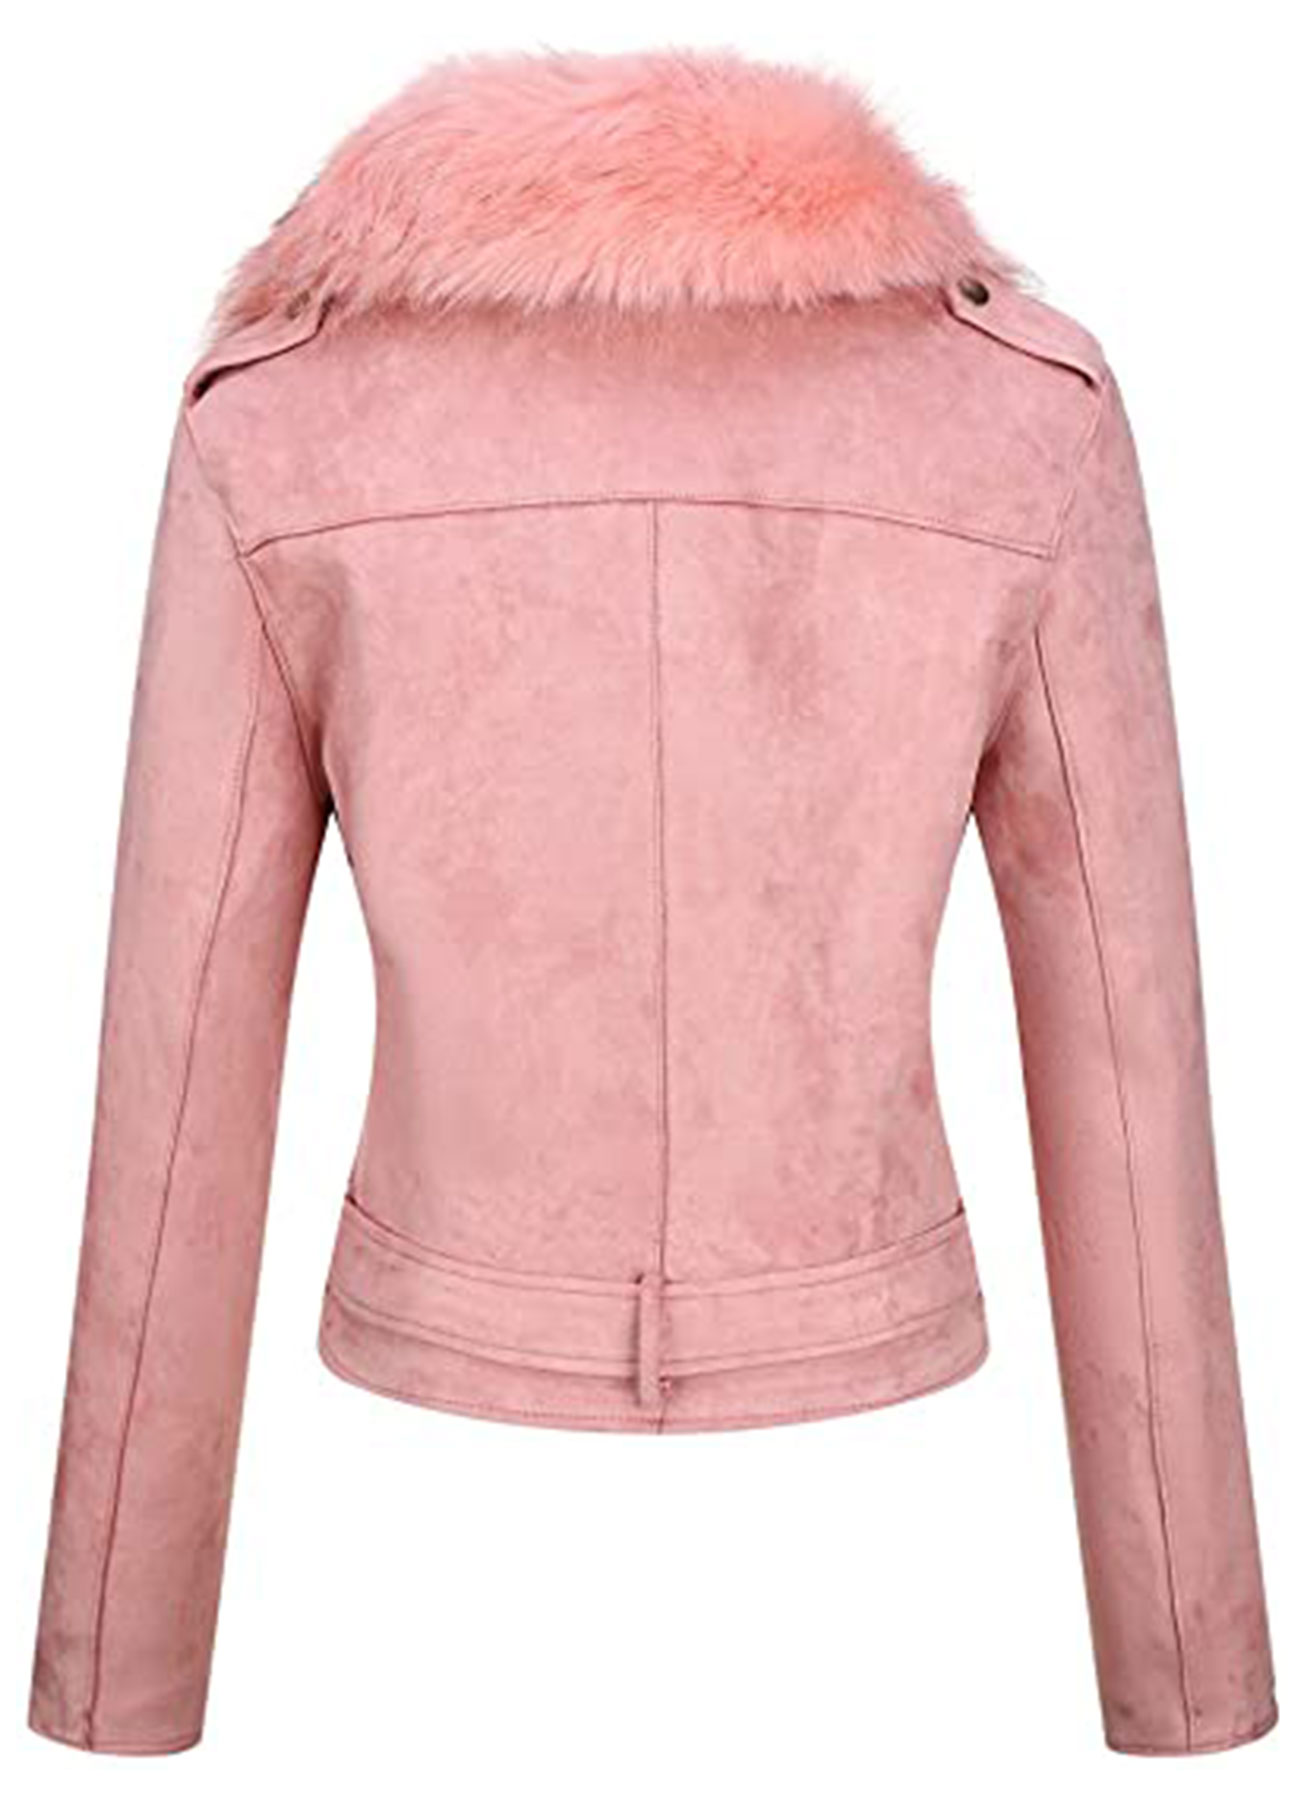 Women's Suede Leather Long Jacket with Faux Fur Collar